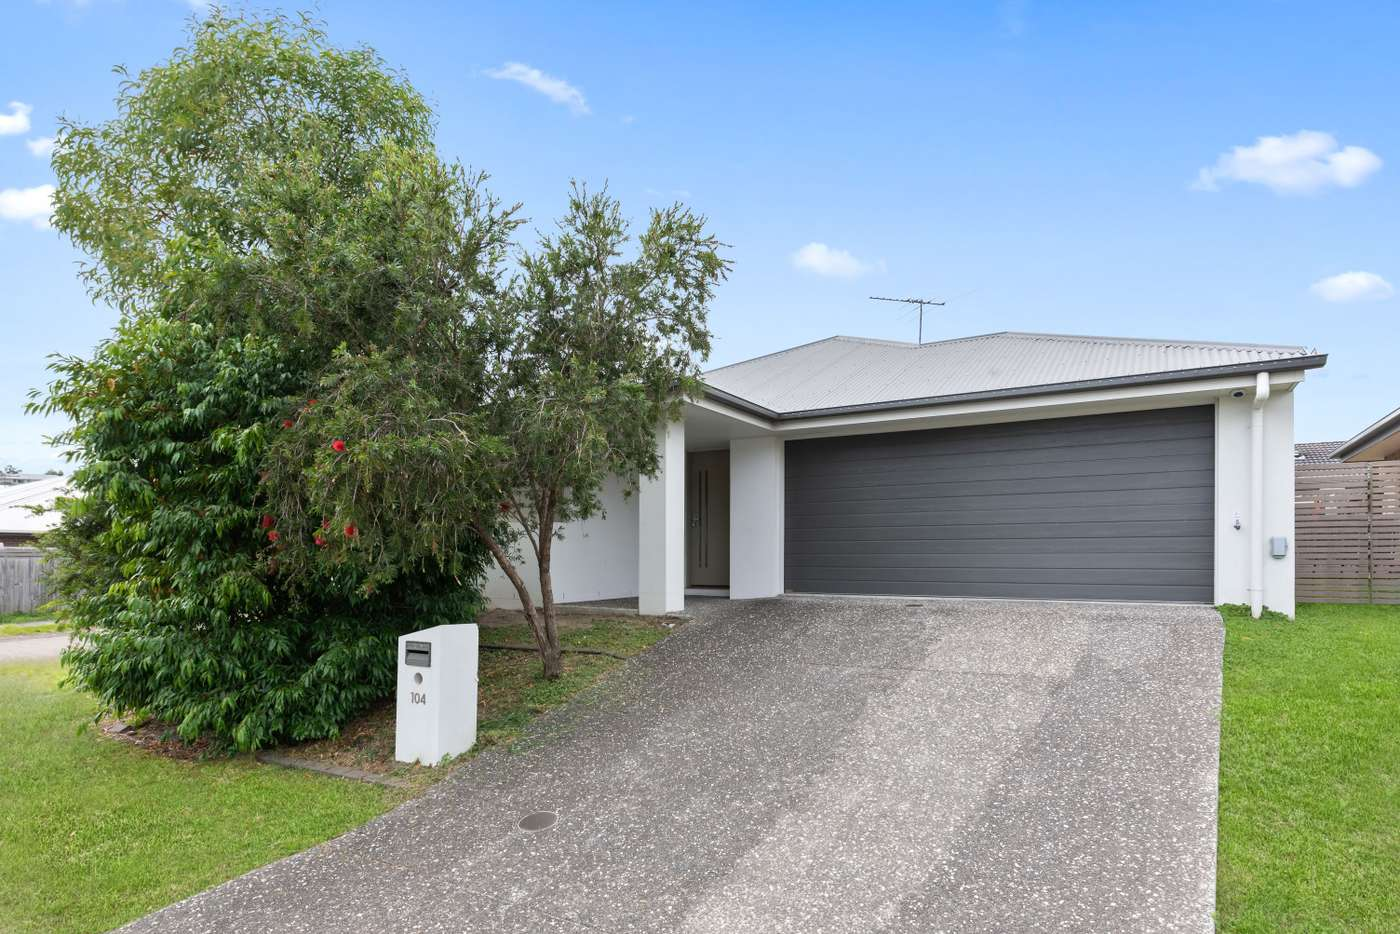 Main view of Homely house listing, 104 Grand Terrace, Waterford QLD 4133